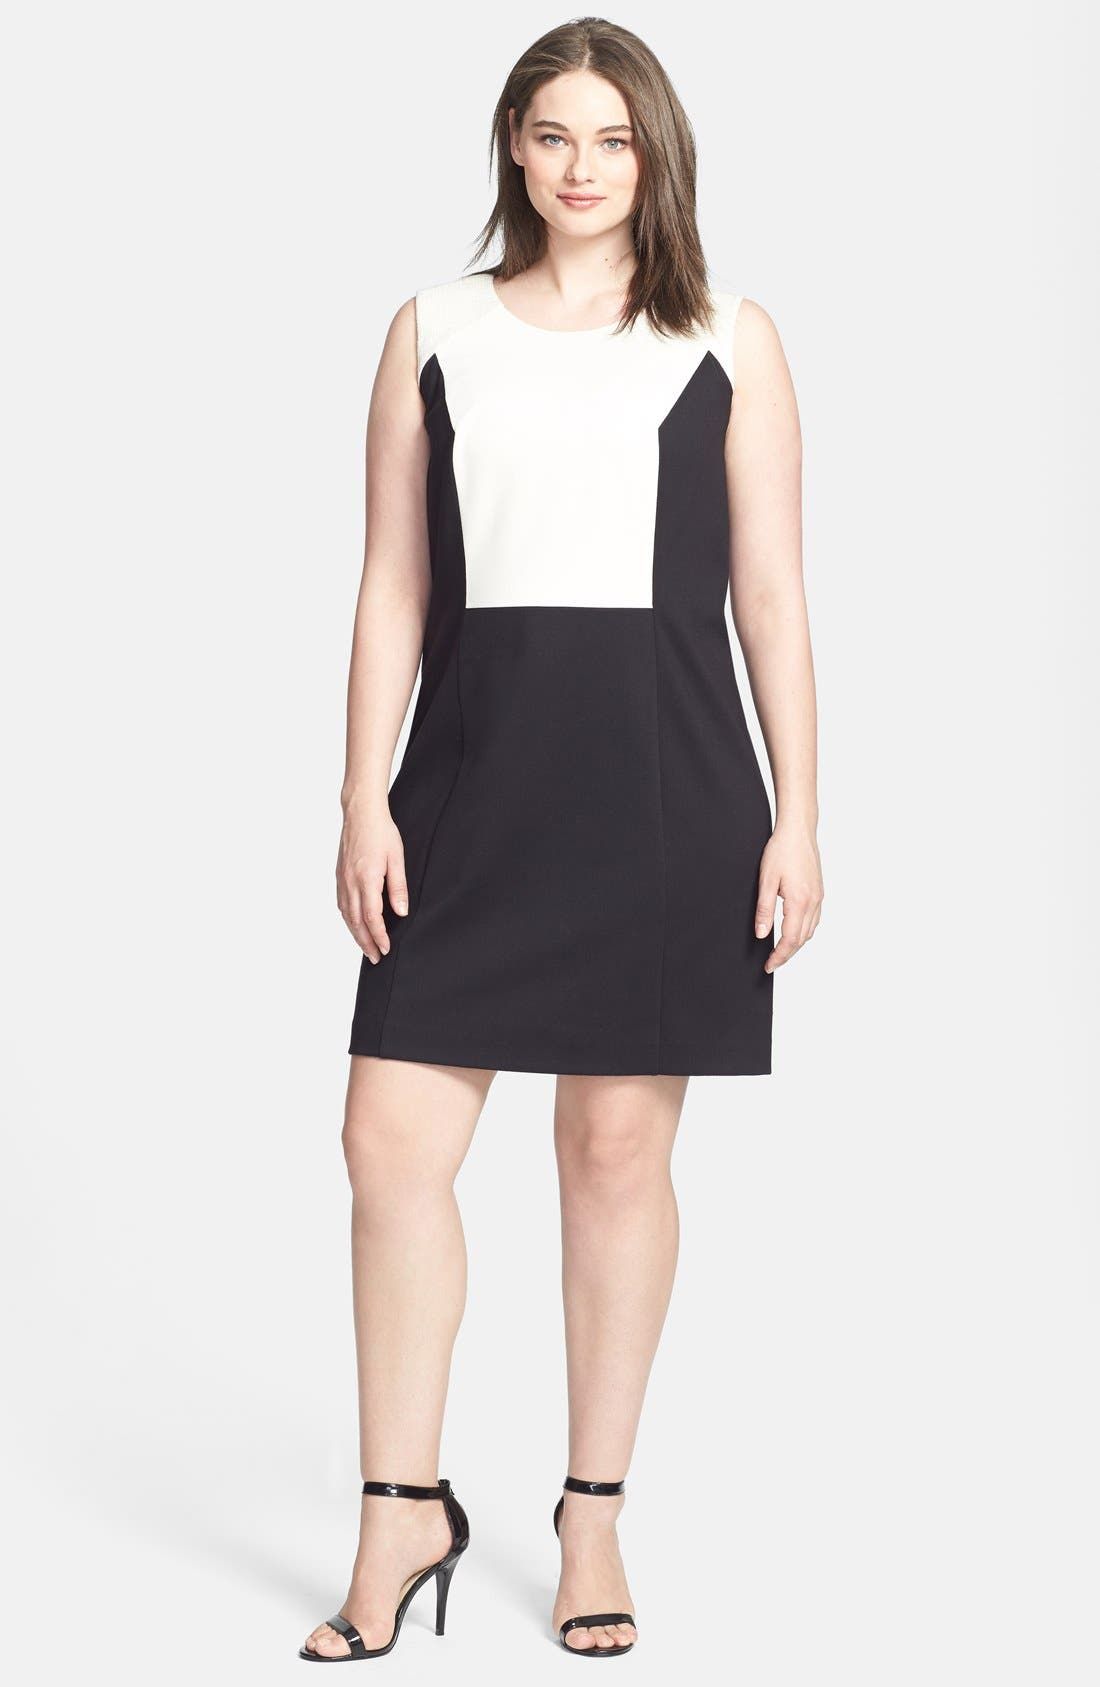 Alternate Image 1 Selected - DKNYC Sleeveless Colorblock Dress (Plus Size)